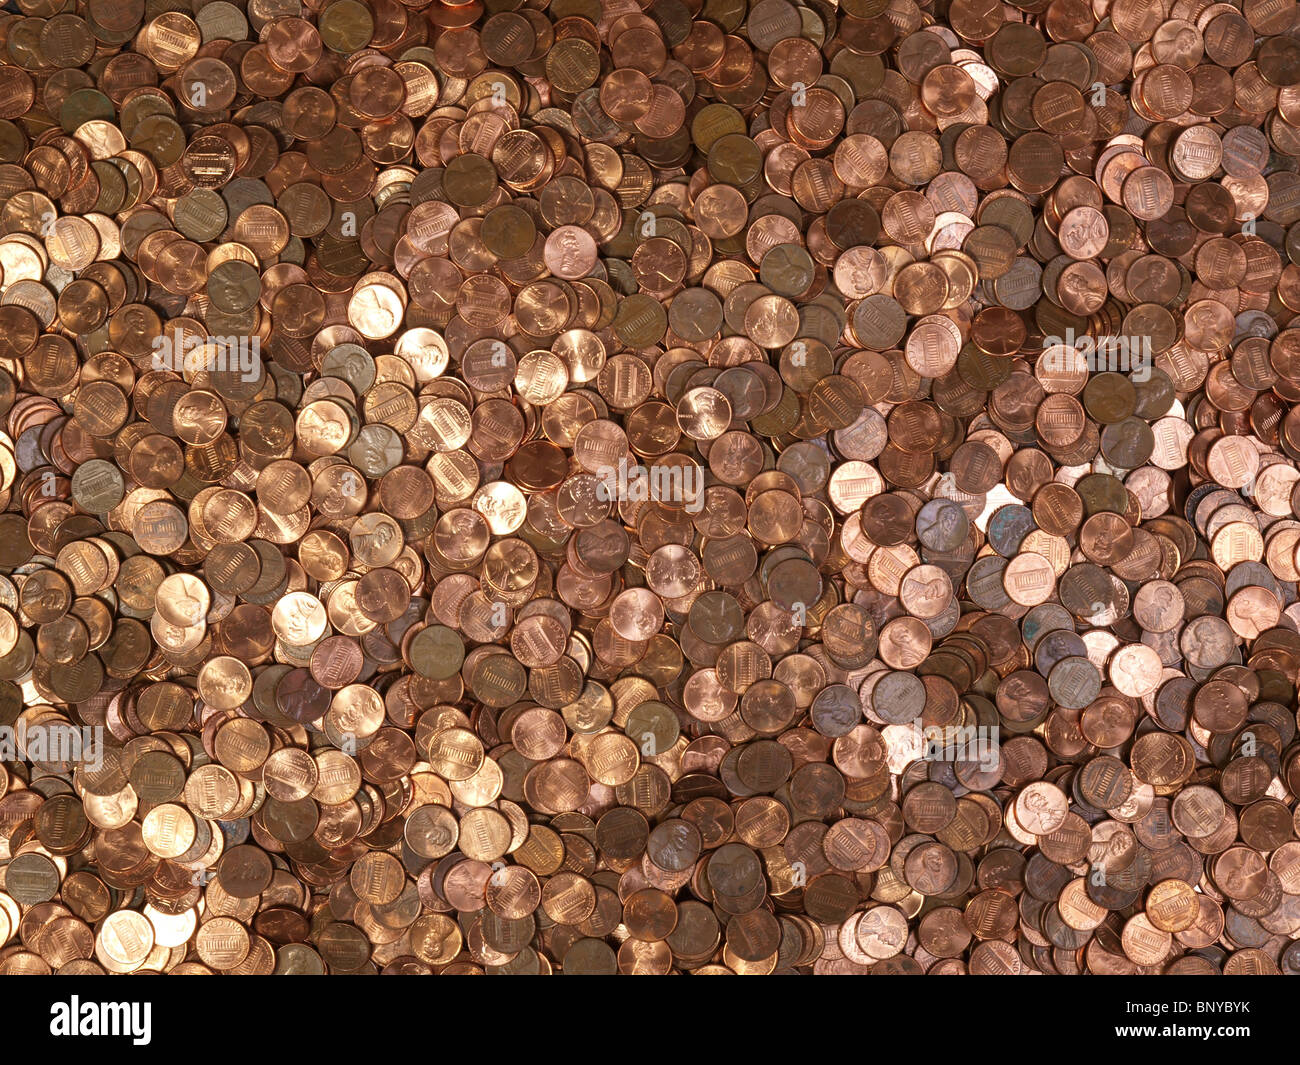 Large pile of shinny American Lincoln pennies. Stock Photo